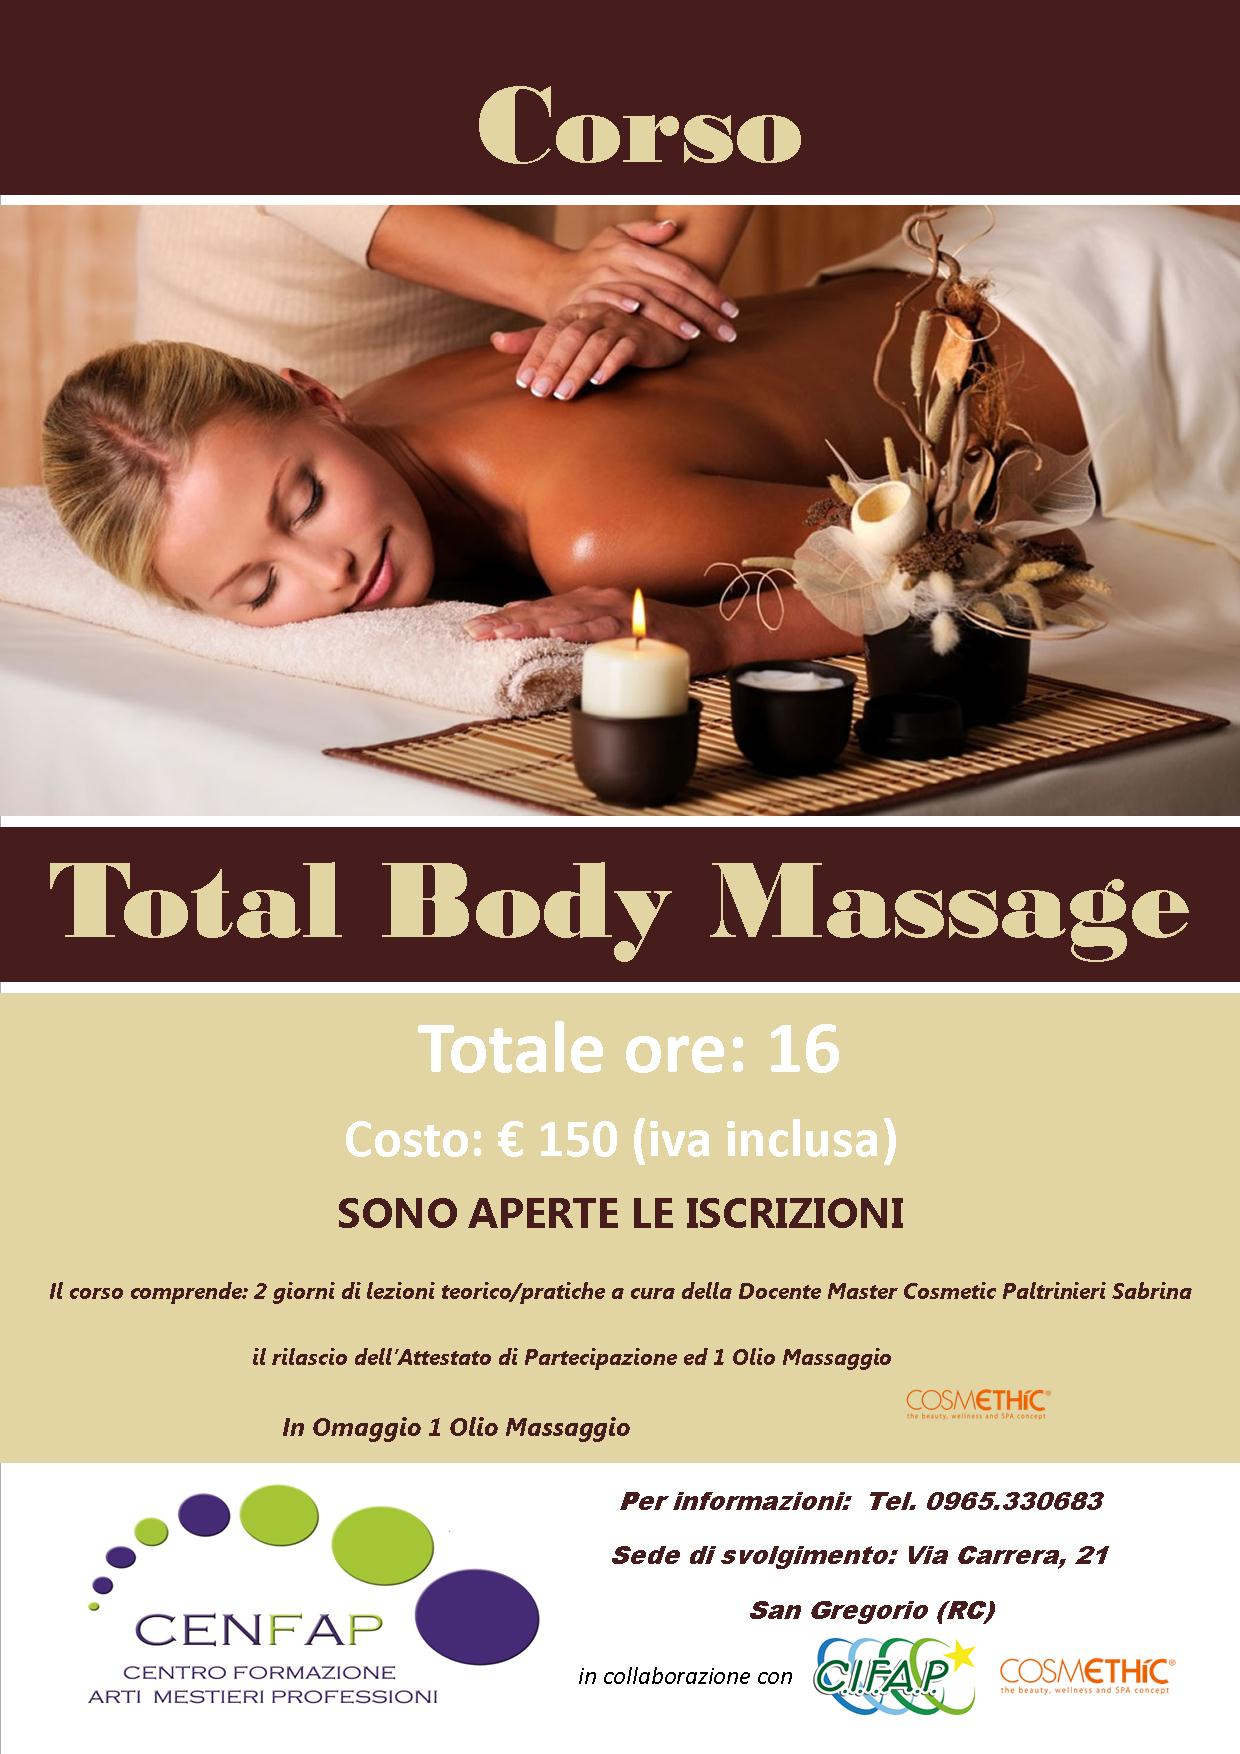 Corso-Total-Body-Massage